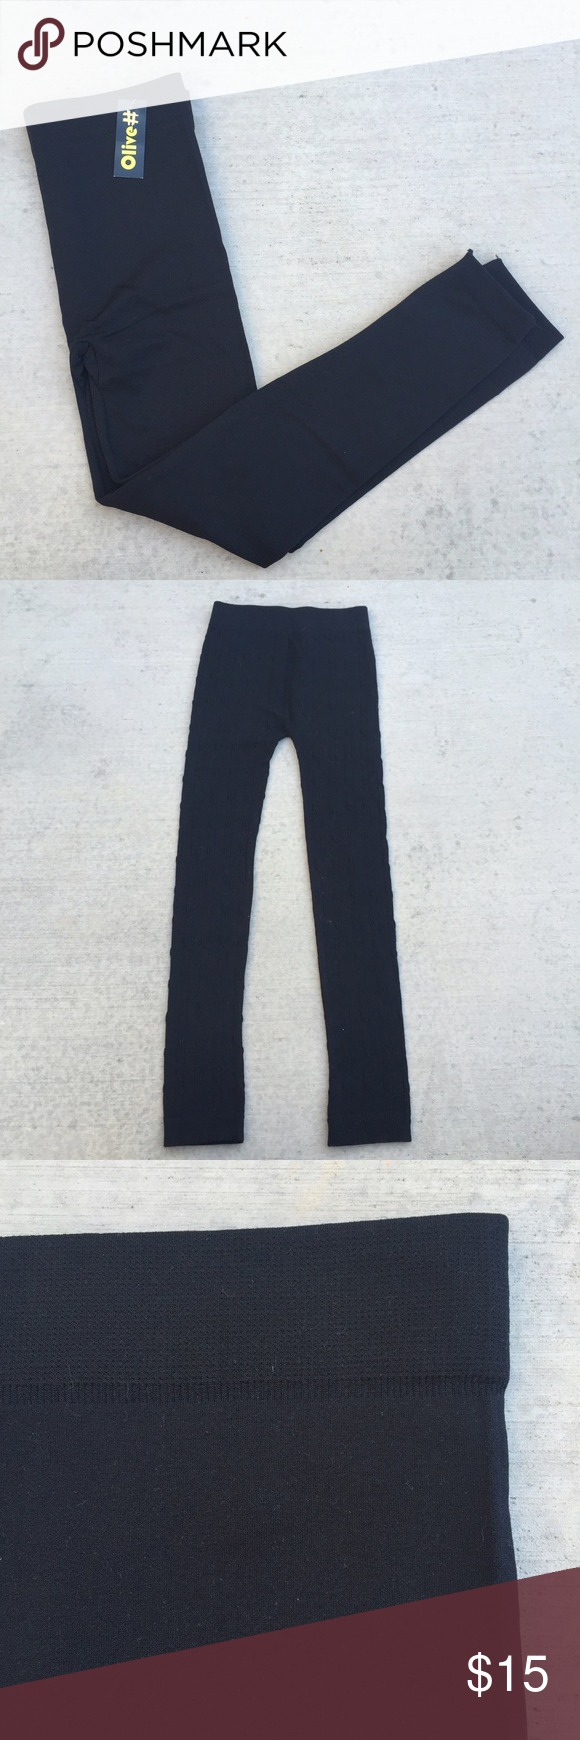 Fleece Lined Leggings • 65% poly / 20% cotton / 15% spandex • Seamless on the sides and waistband for a smooth finish either layered under or worn alone • Plush / brushed fleece lined! Super cozy and warm! Pants Leggings